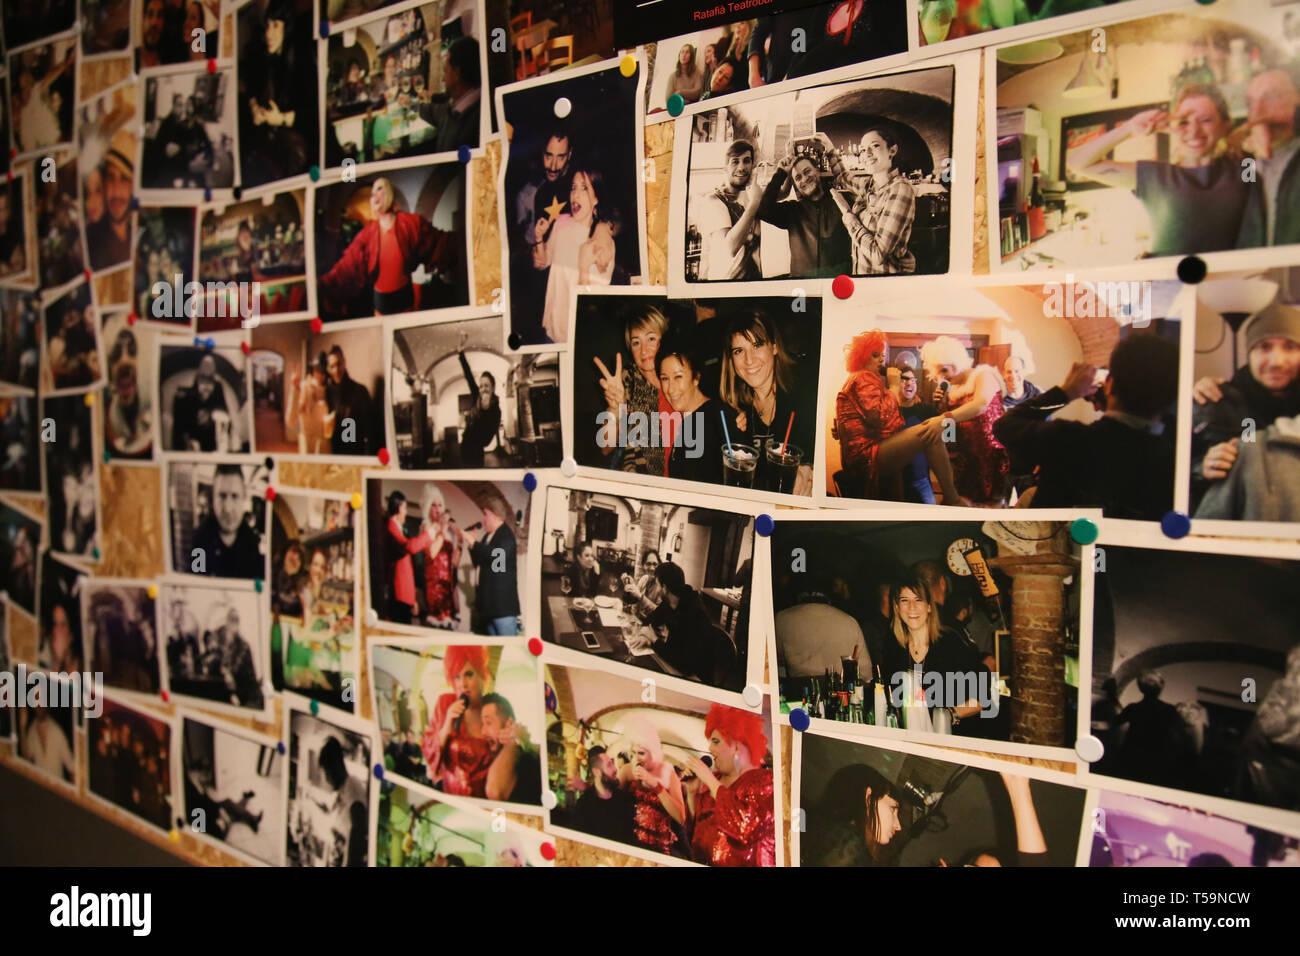 Photographs of various people on the wall - Stock Image